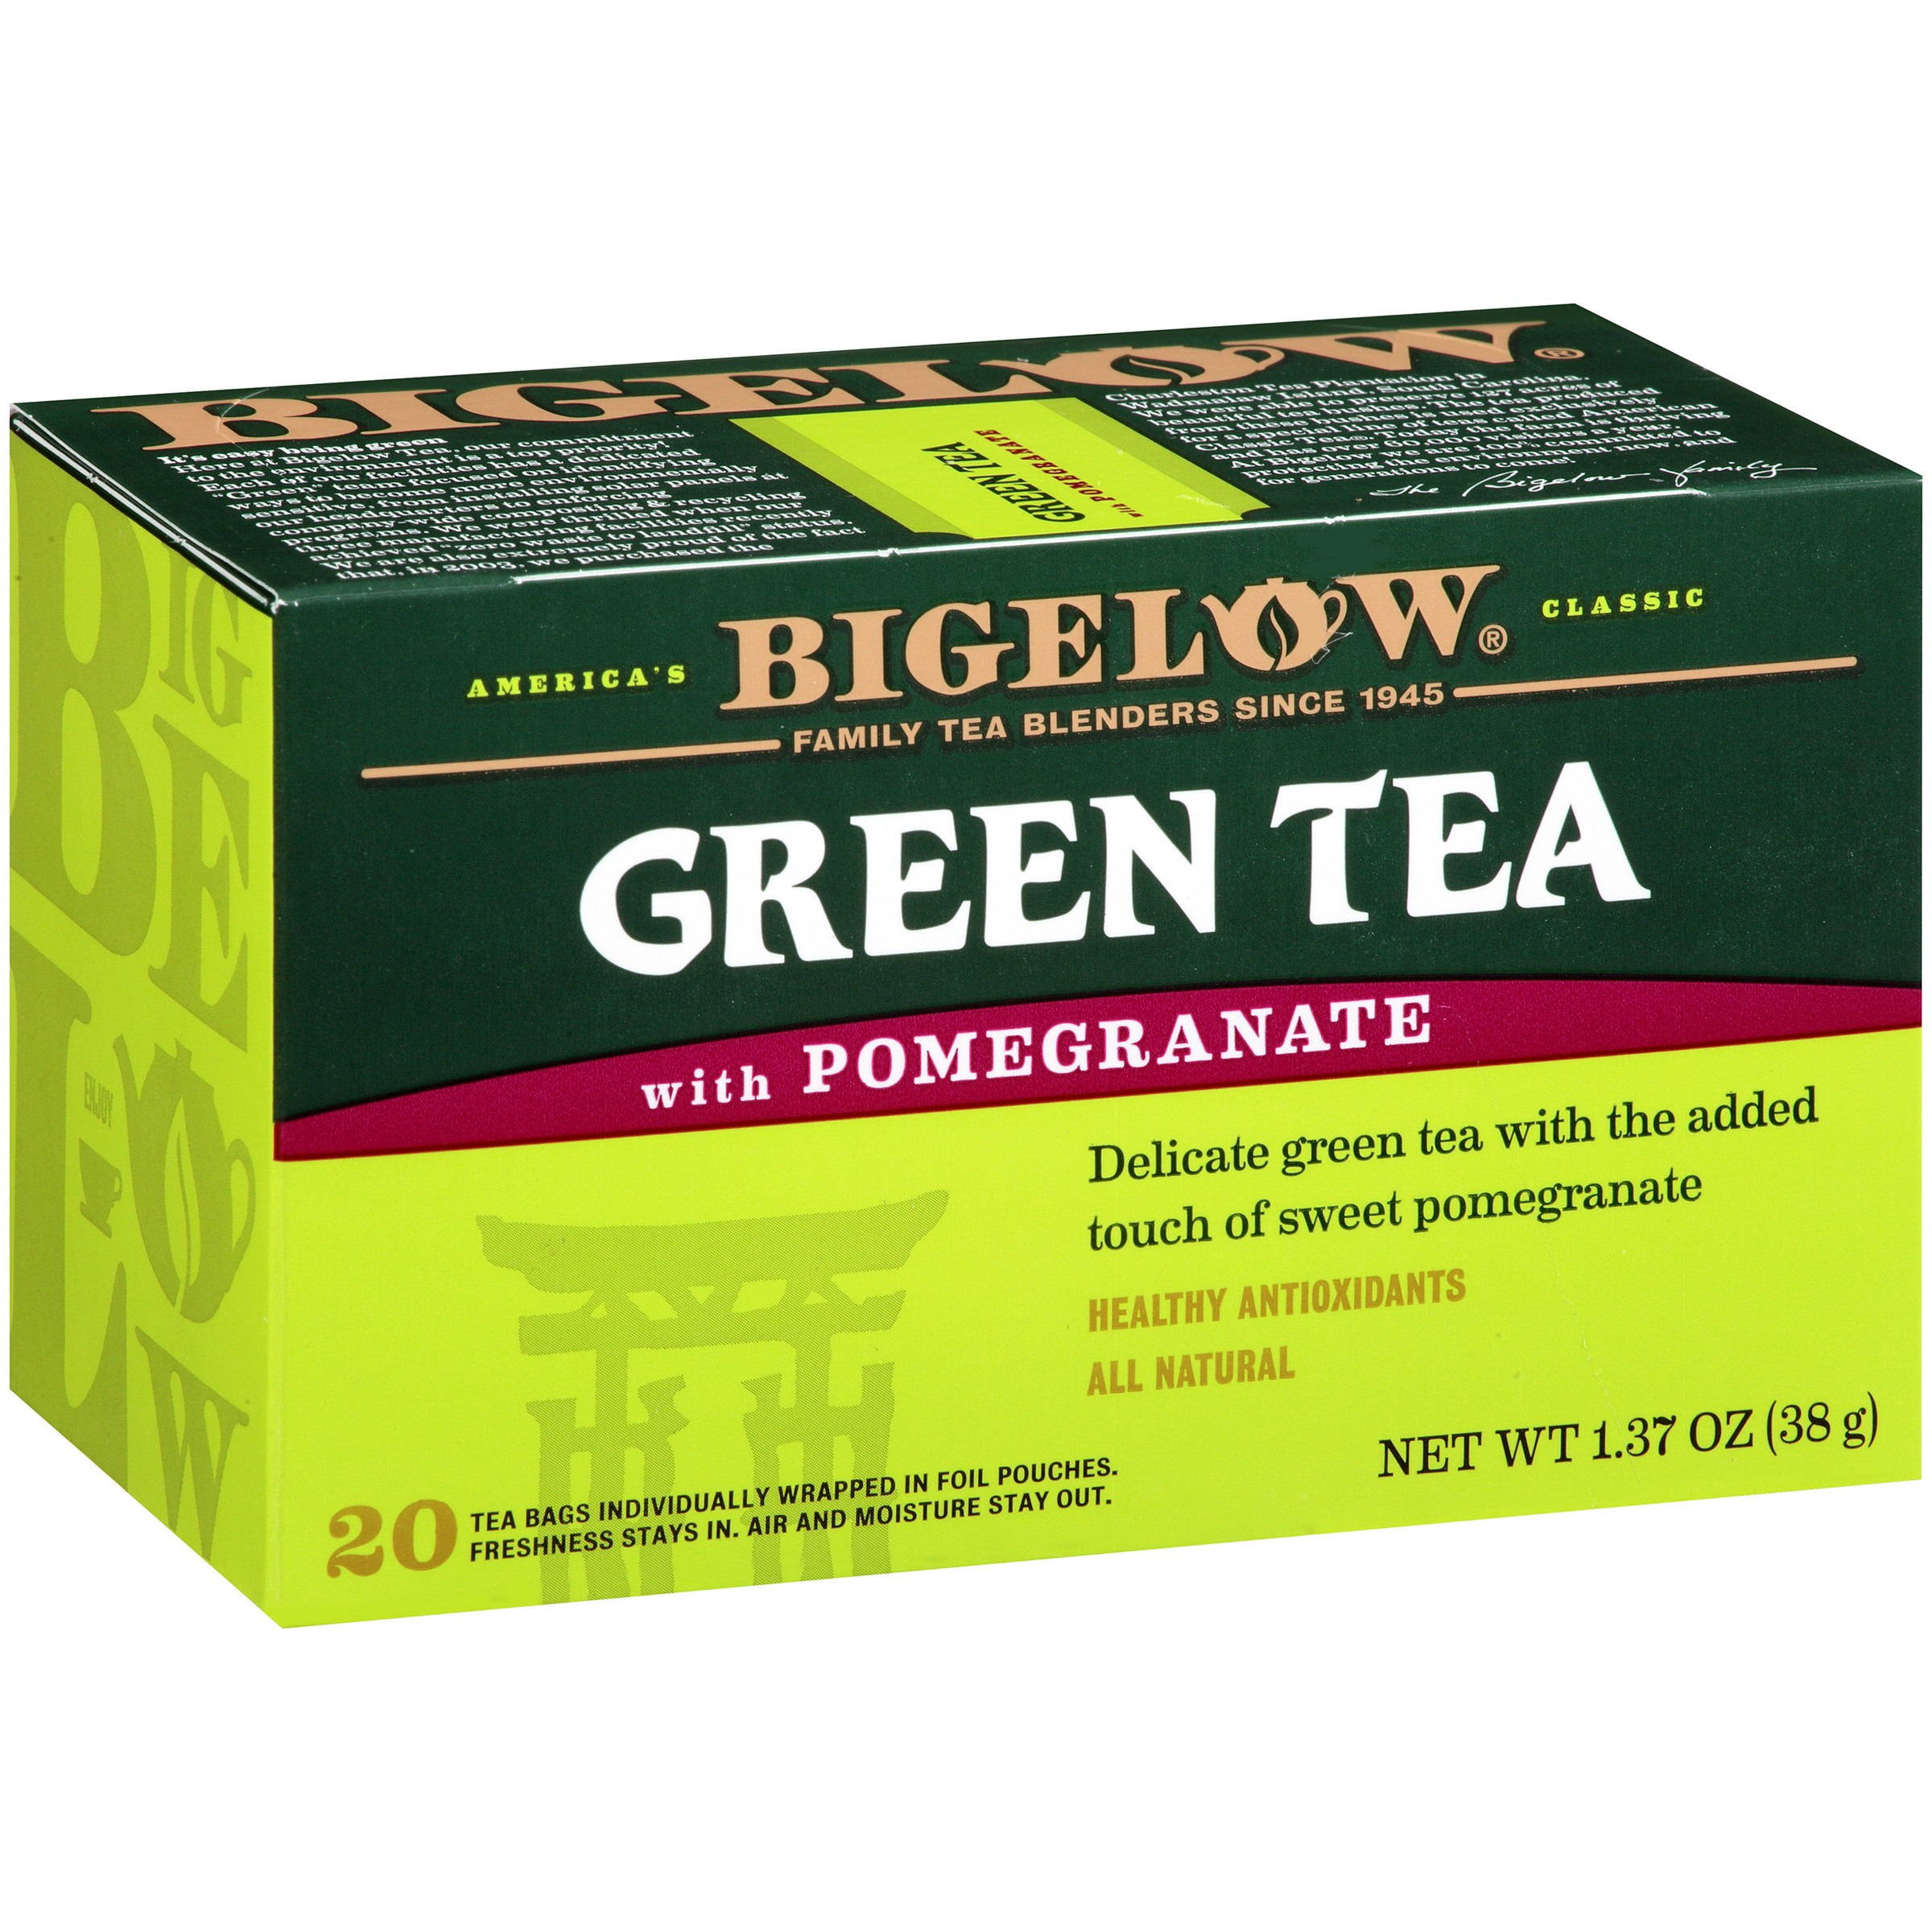 Bigelow Green Tea with Pomegranate 20 CT by RC Bigelow, Inc.